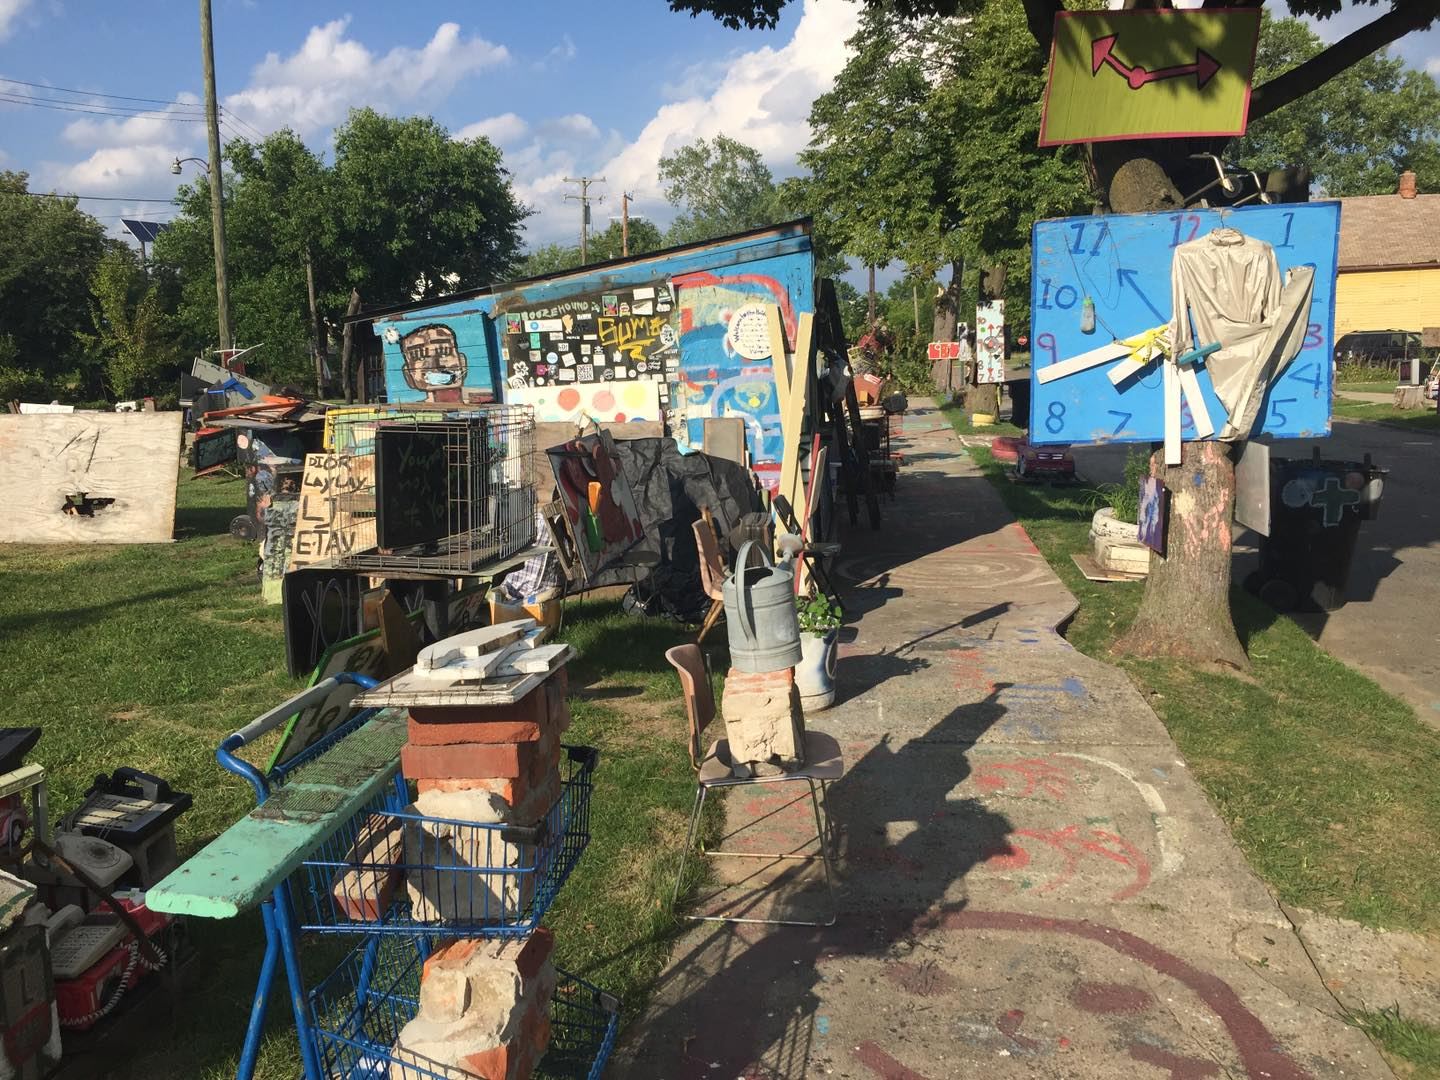 Detroit's Heidelberg Project is a transformative outdoor art installation, which artist Tyree Guyton created in response to blight and crime more than 30 years ago. Pictured Aug. 10, 2020. (Photo credit: Ron Hilliard/Mid-Michigan NOW)